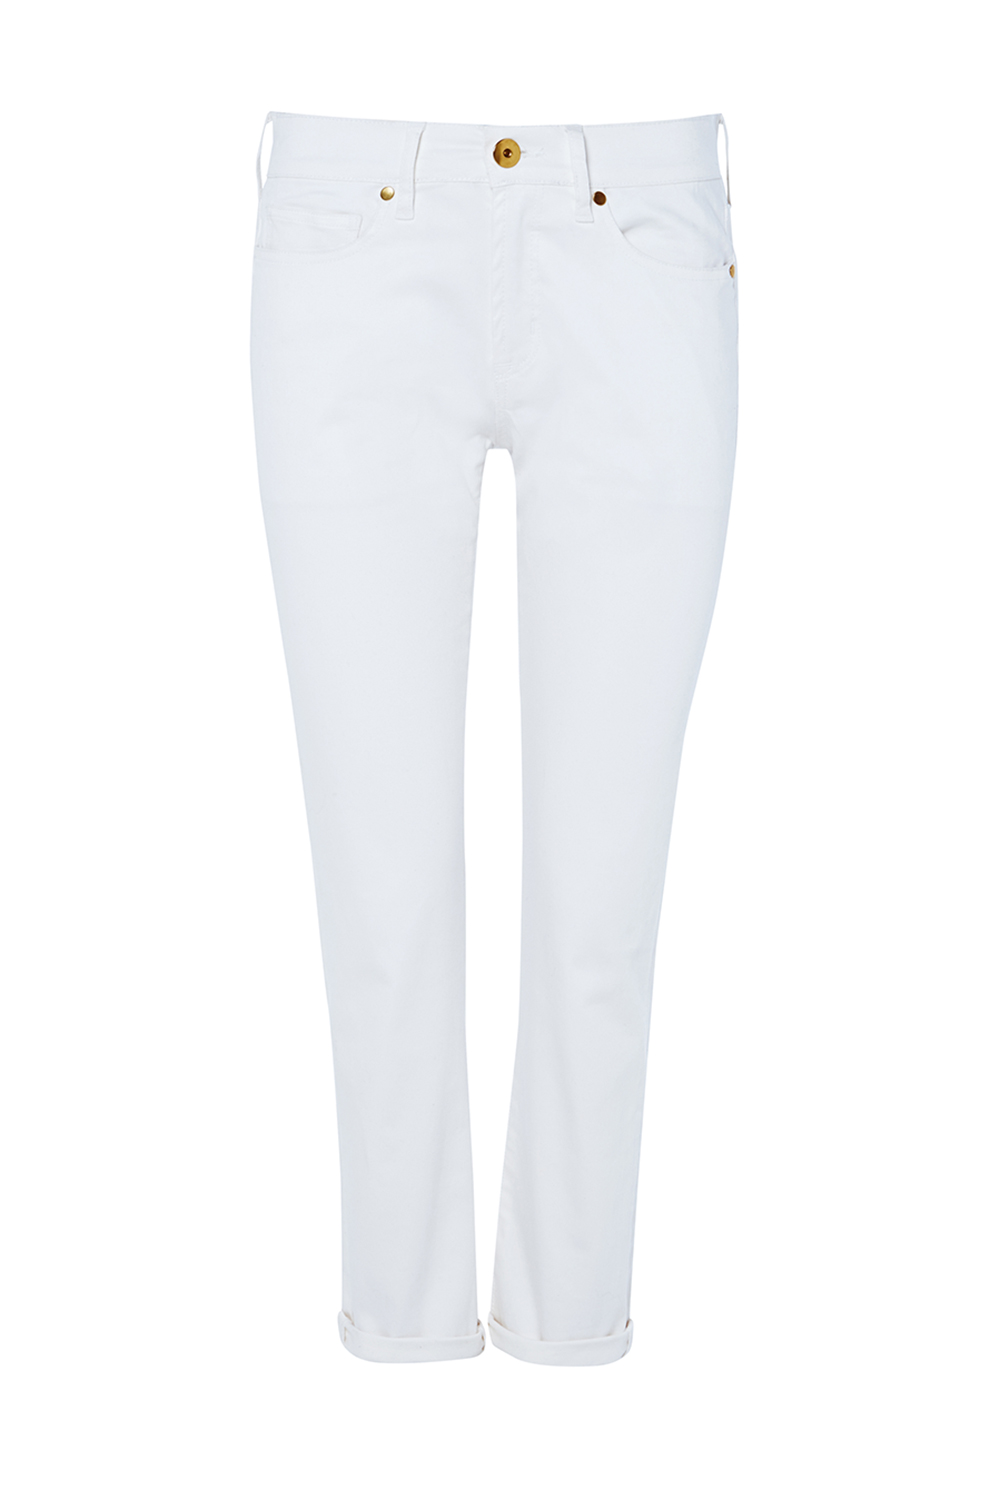 Best White Jeans | Shop Our Edit Of The Best High Street Jeans